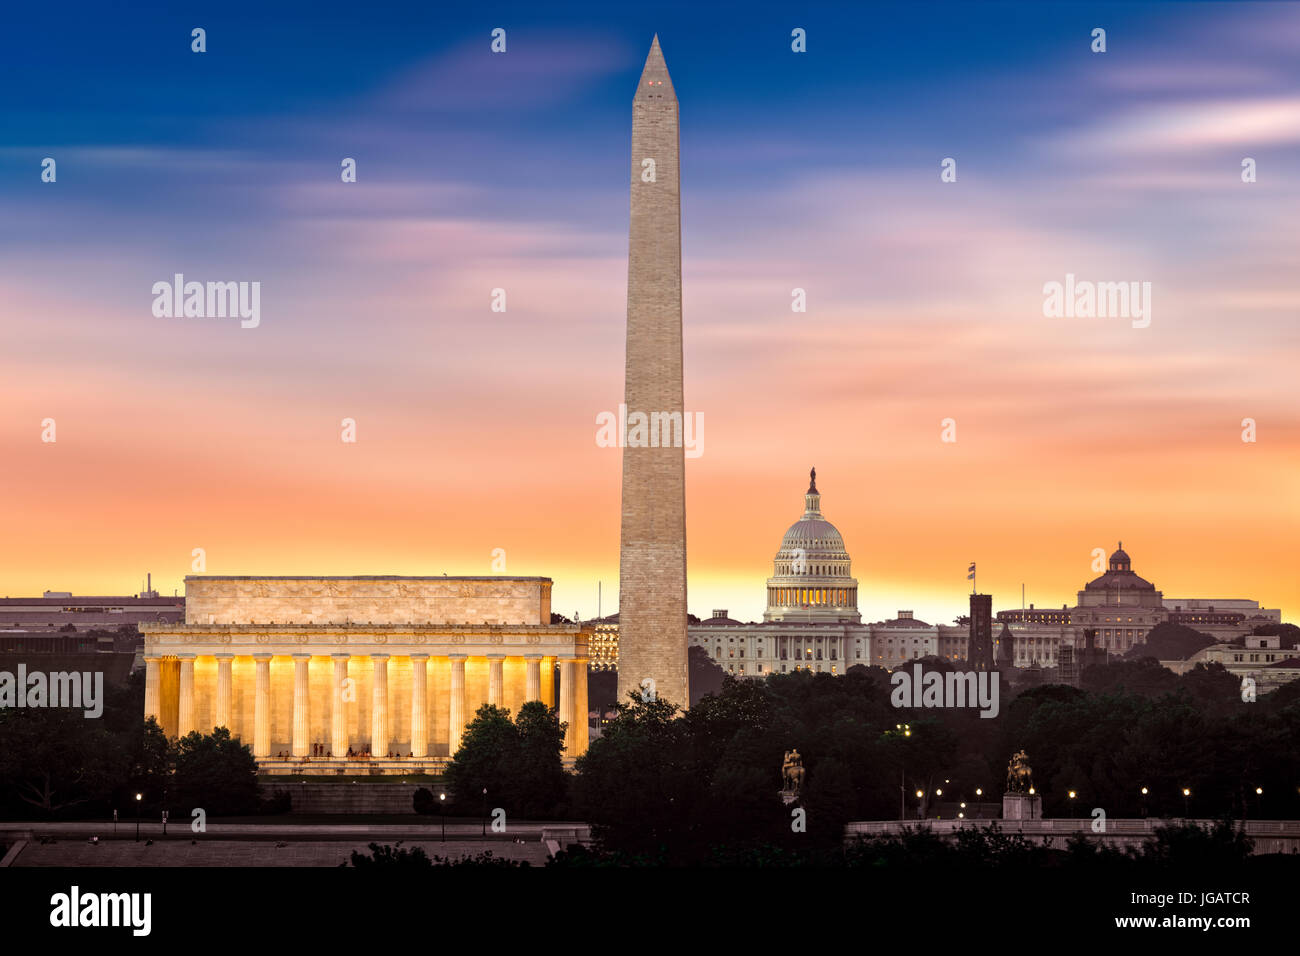 New Dawn over Washington - con 3 leggendari monumenti illuminati a sunrise: Lincoln Memorial, il Monumento a Washington Immagini Stock